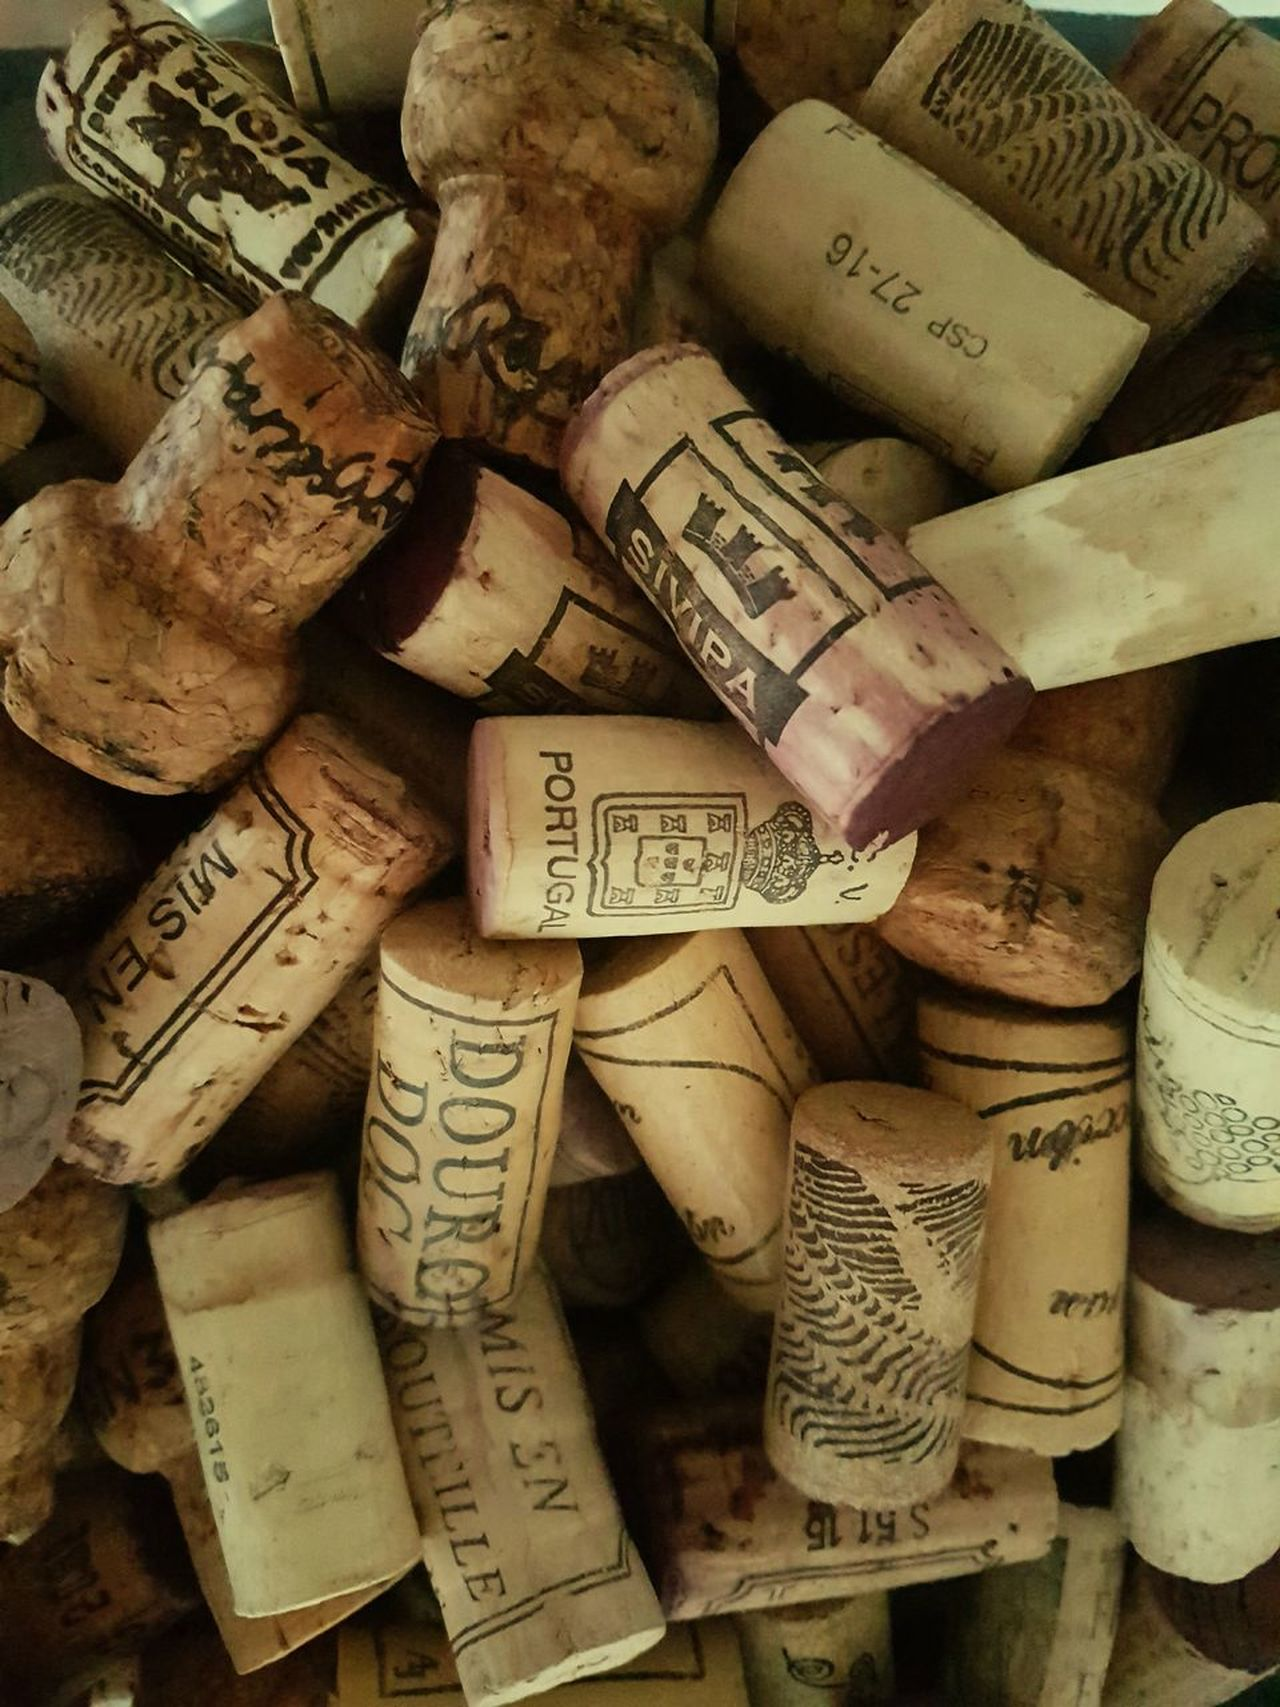 Wine Cork Wine Redwine Passions My Point Of View My Father Said: Intelectual People Drinks Redwine :)